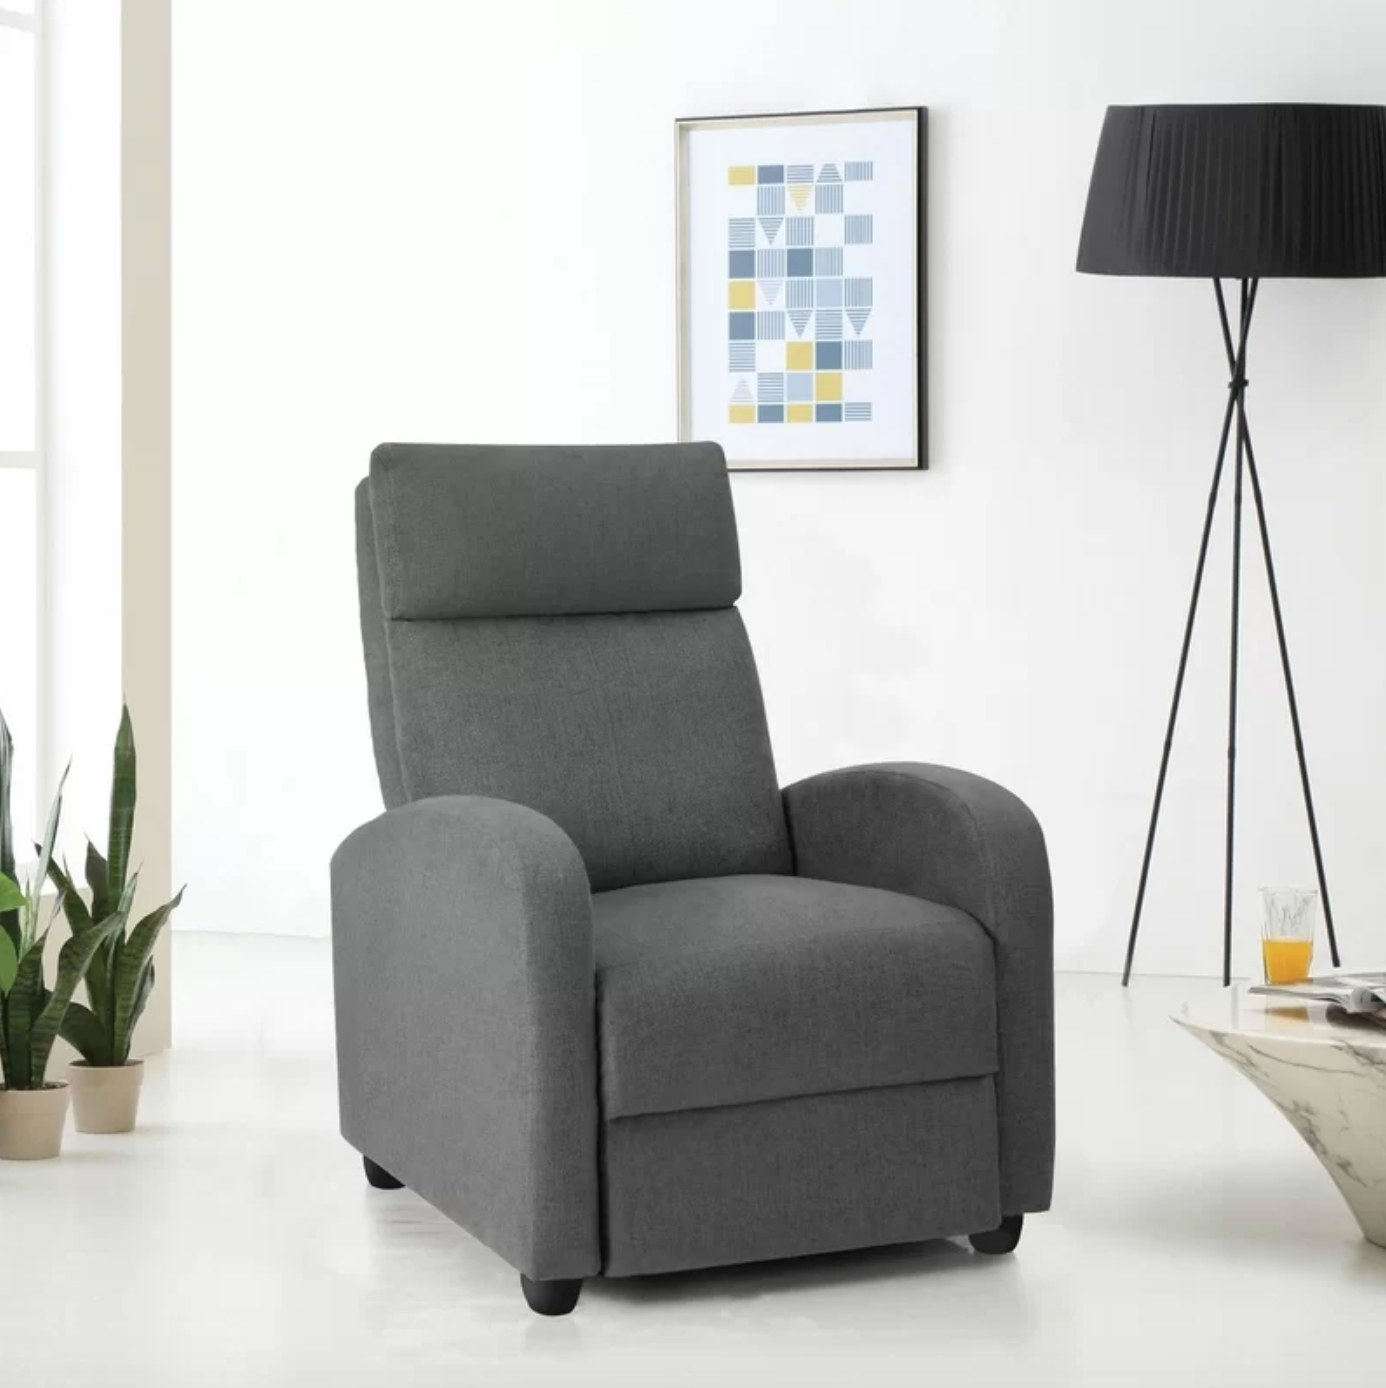 The massage chair in gray